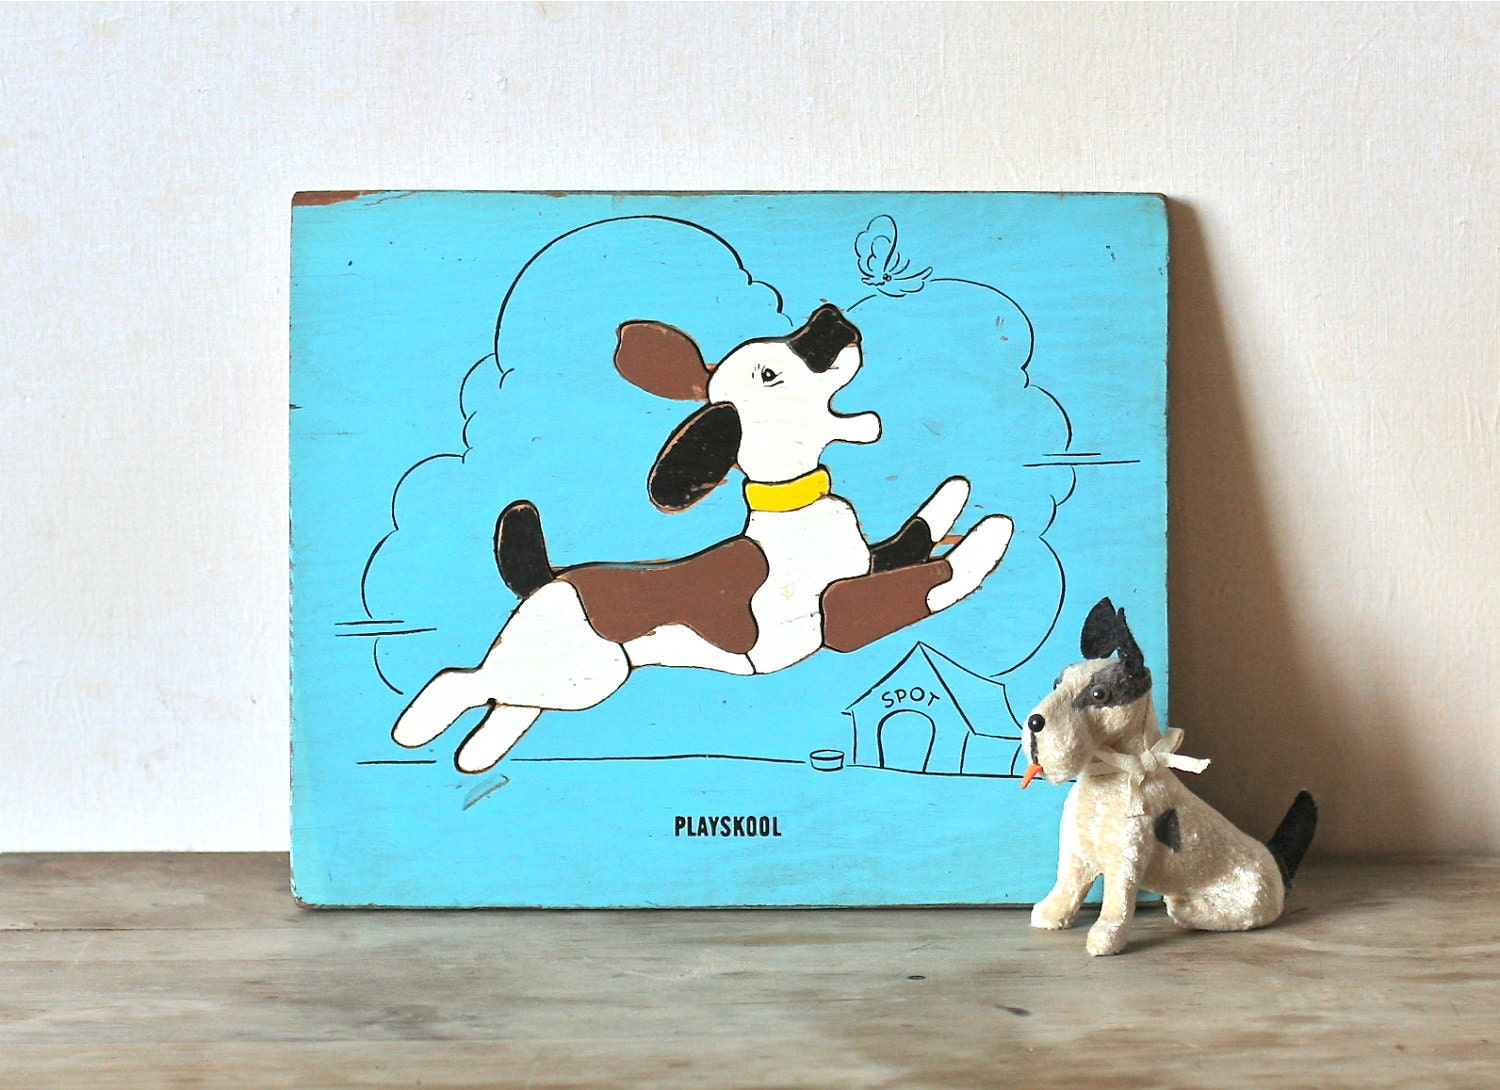 Circa 1950s Playskool Wooden Puzzle Spot The Dog - ivorybird